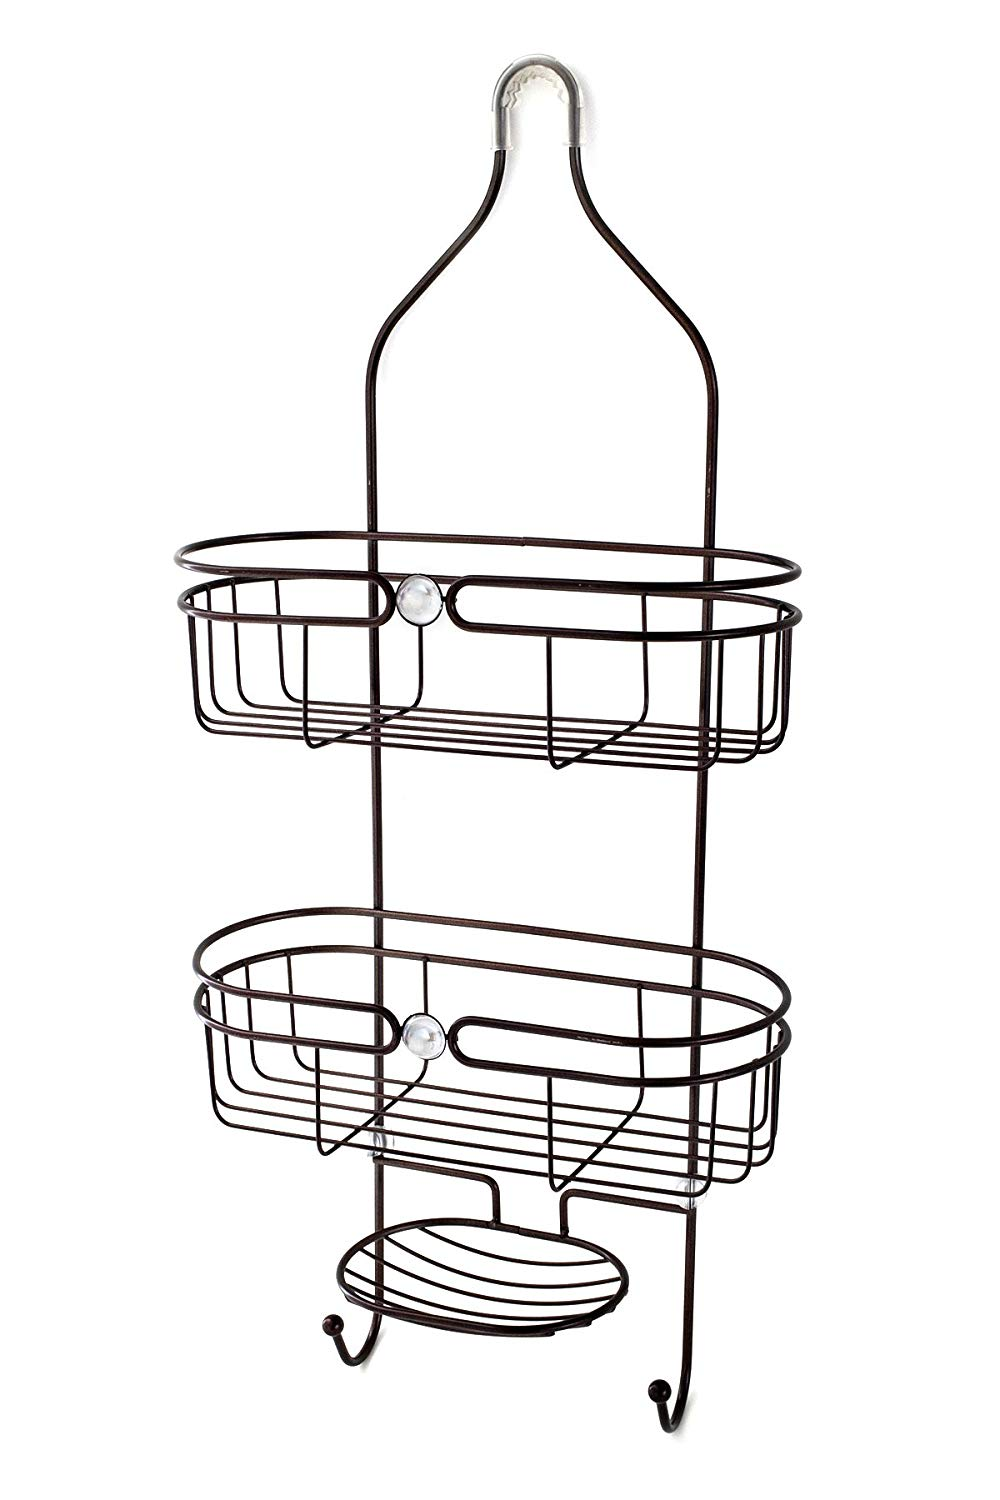 "Splash Home Tailor Shower Caddy Bathroom Hanging Head Two Basket Organizers Plus Dish, 25.5"" x 5"" x 11.5"", Oil Rubbed Bronze"